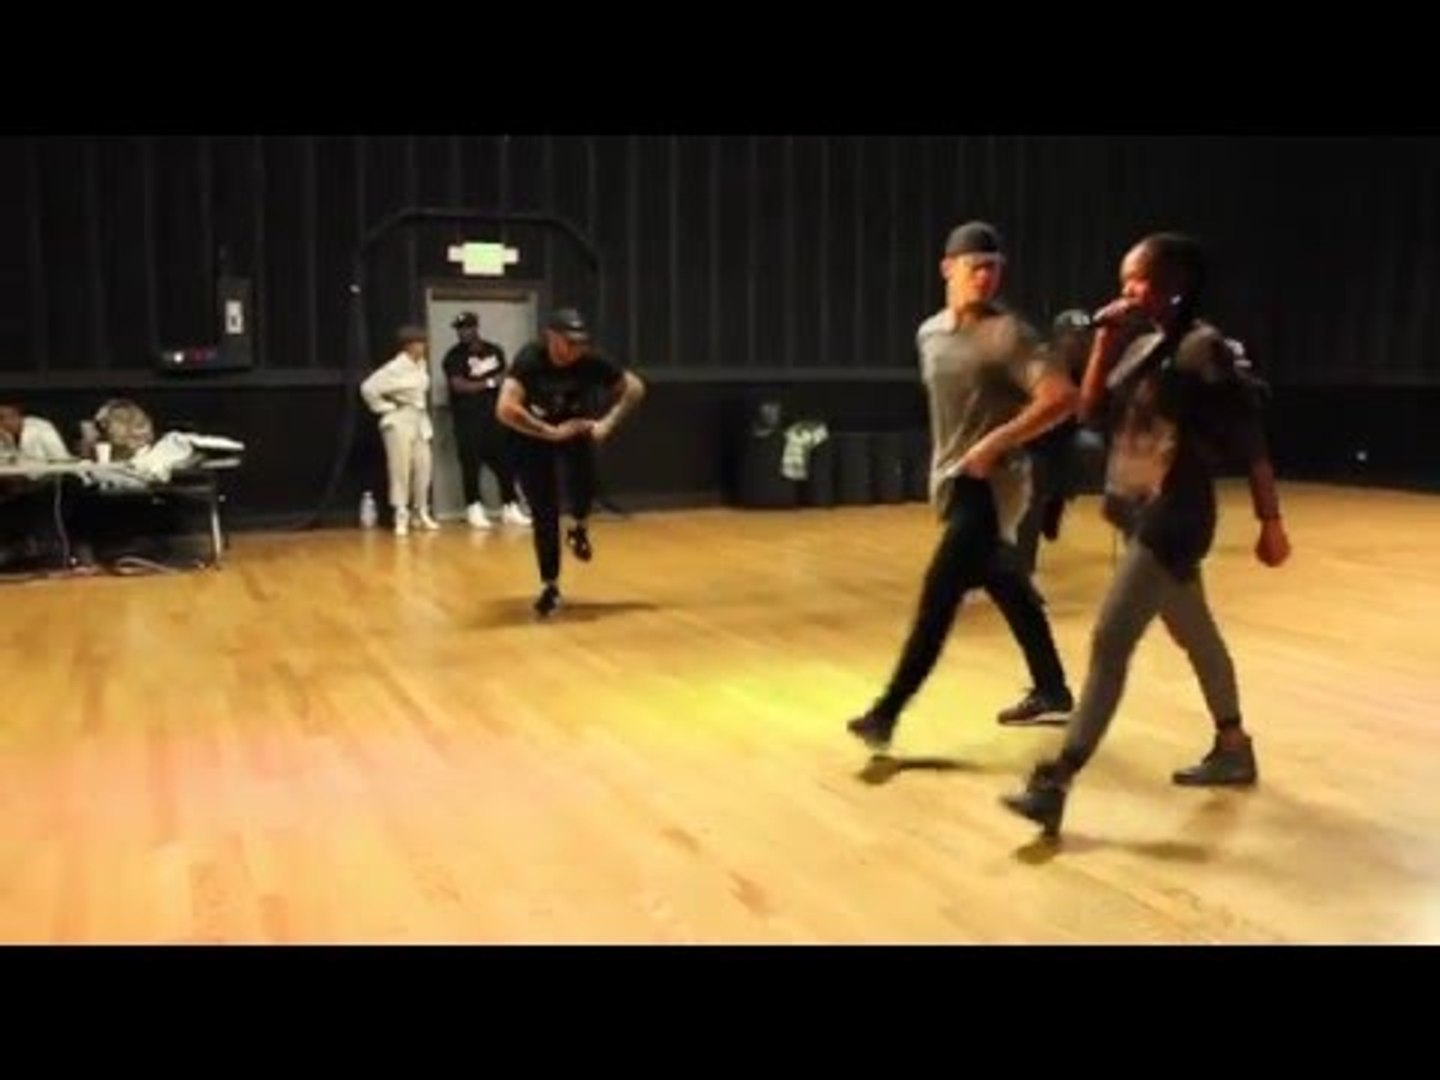 Brandy Soul Train Awards 2015 (Dance Rehearsal)